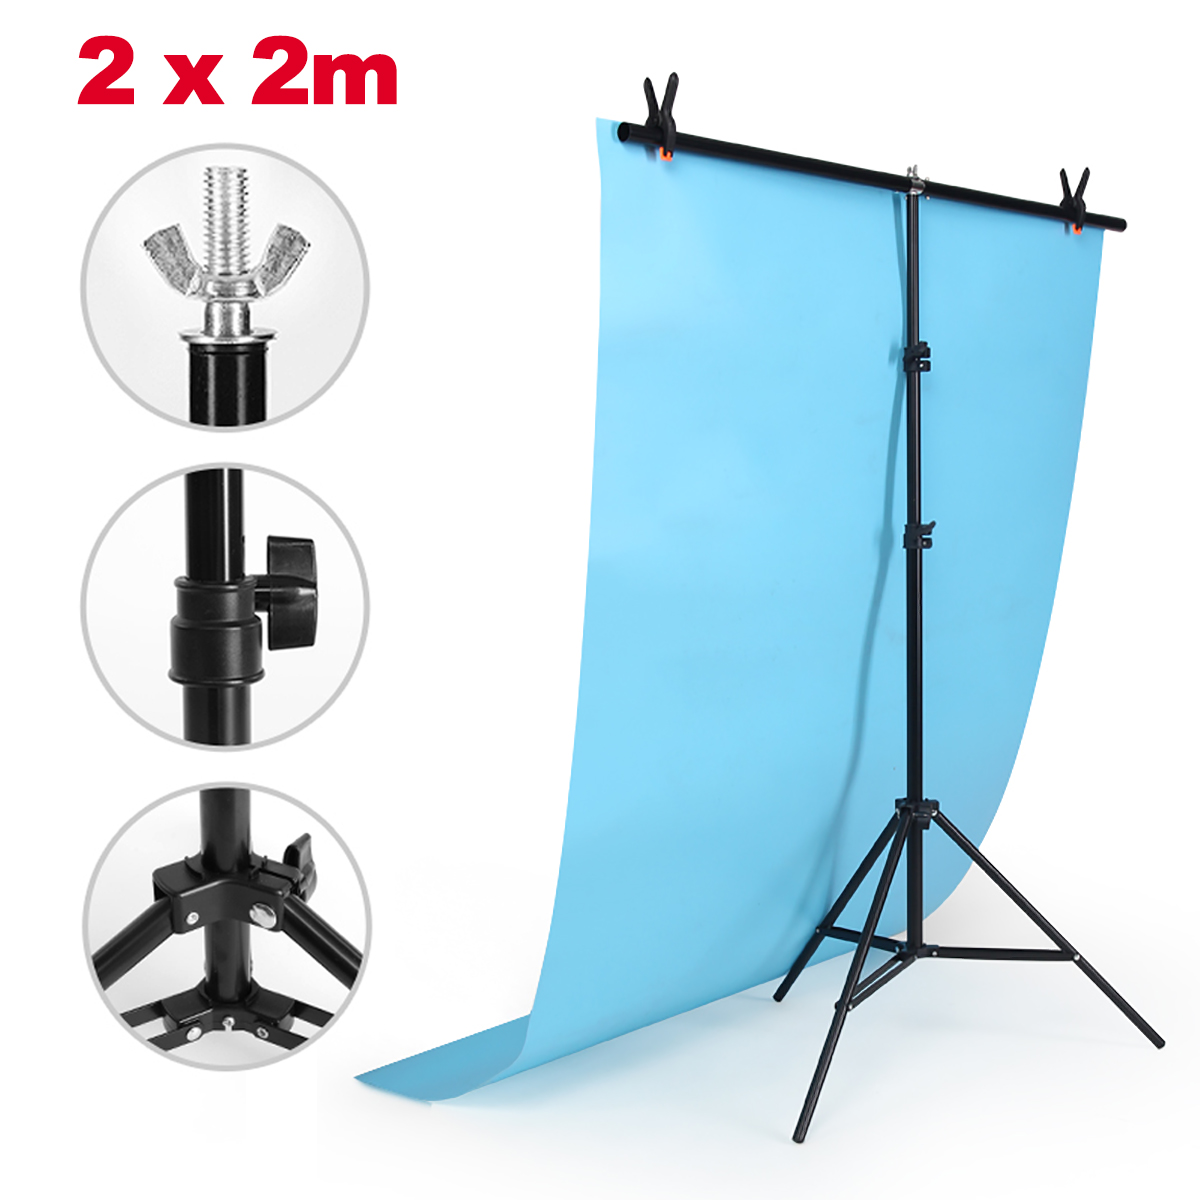 2*2m Adjustable Background Support Stand Photo Backdrop Crossbar Kit Photography New Arrival photo studio 2 6 3m adjustable background support stand photo backdrop crossbar kit photography equipment